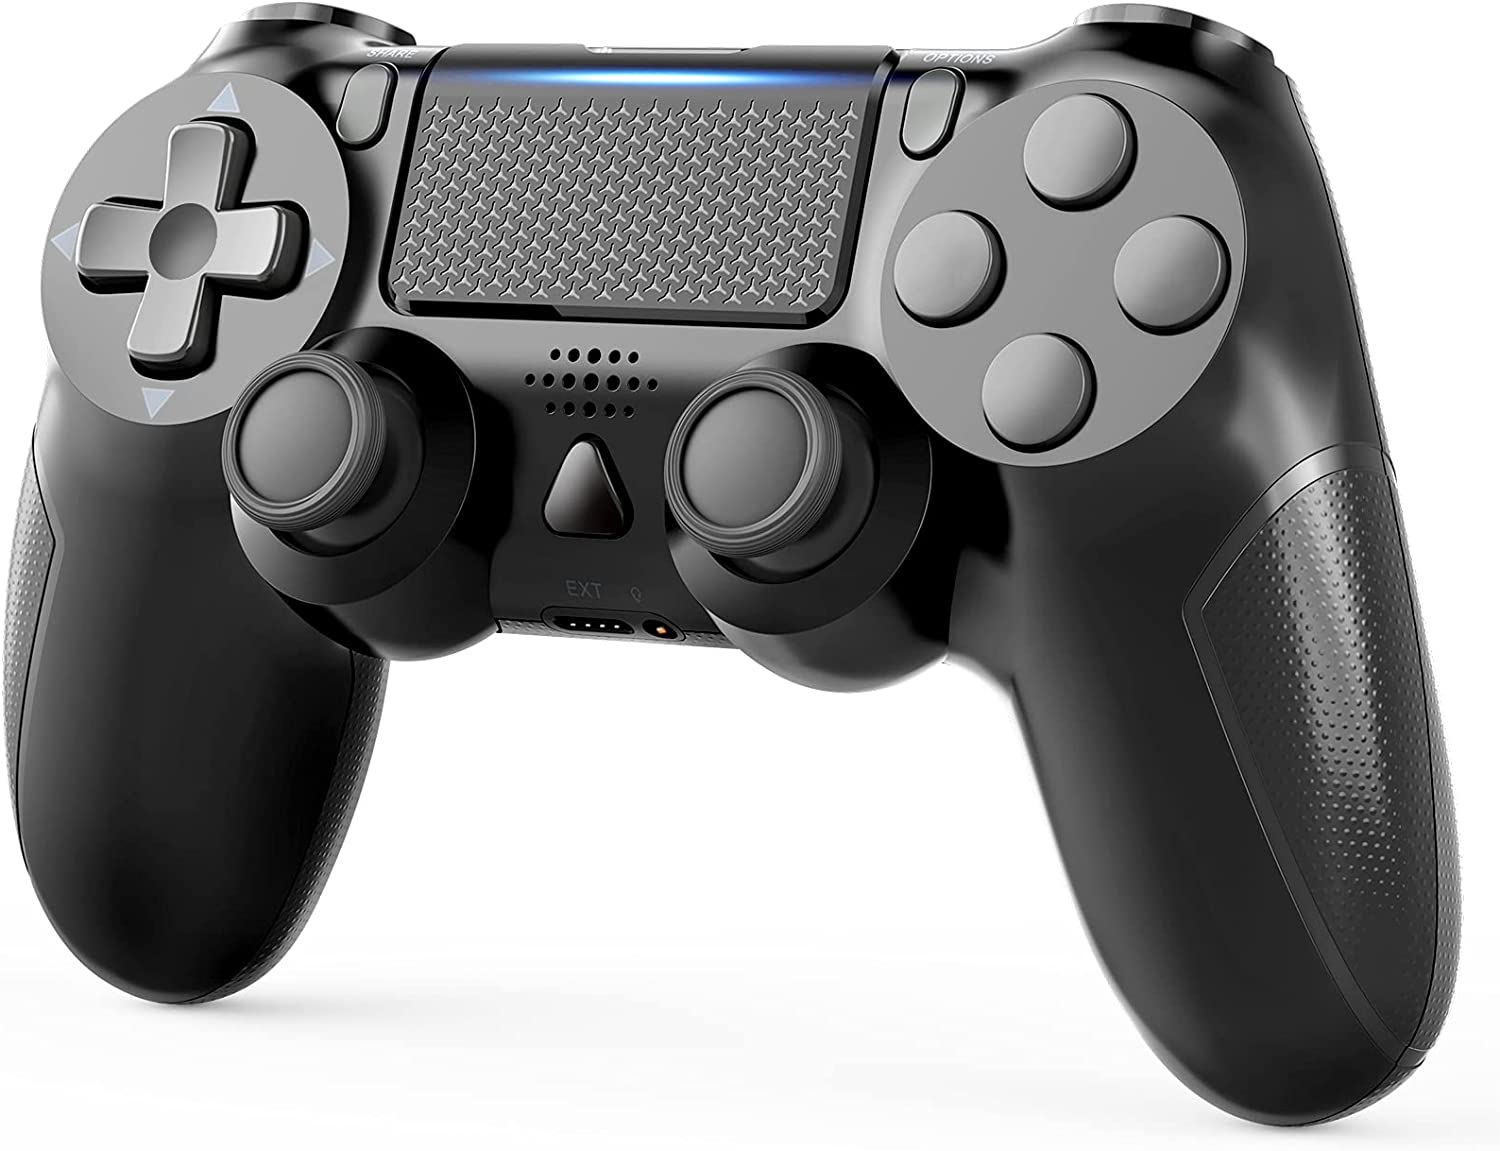 Wireless Controller for PS-4 Gobub Cheap Touch-pad 1000 New products world's highest quality popular mAh Joystick